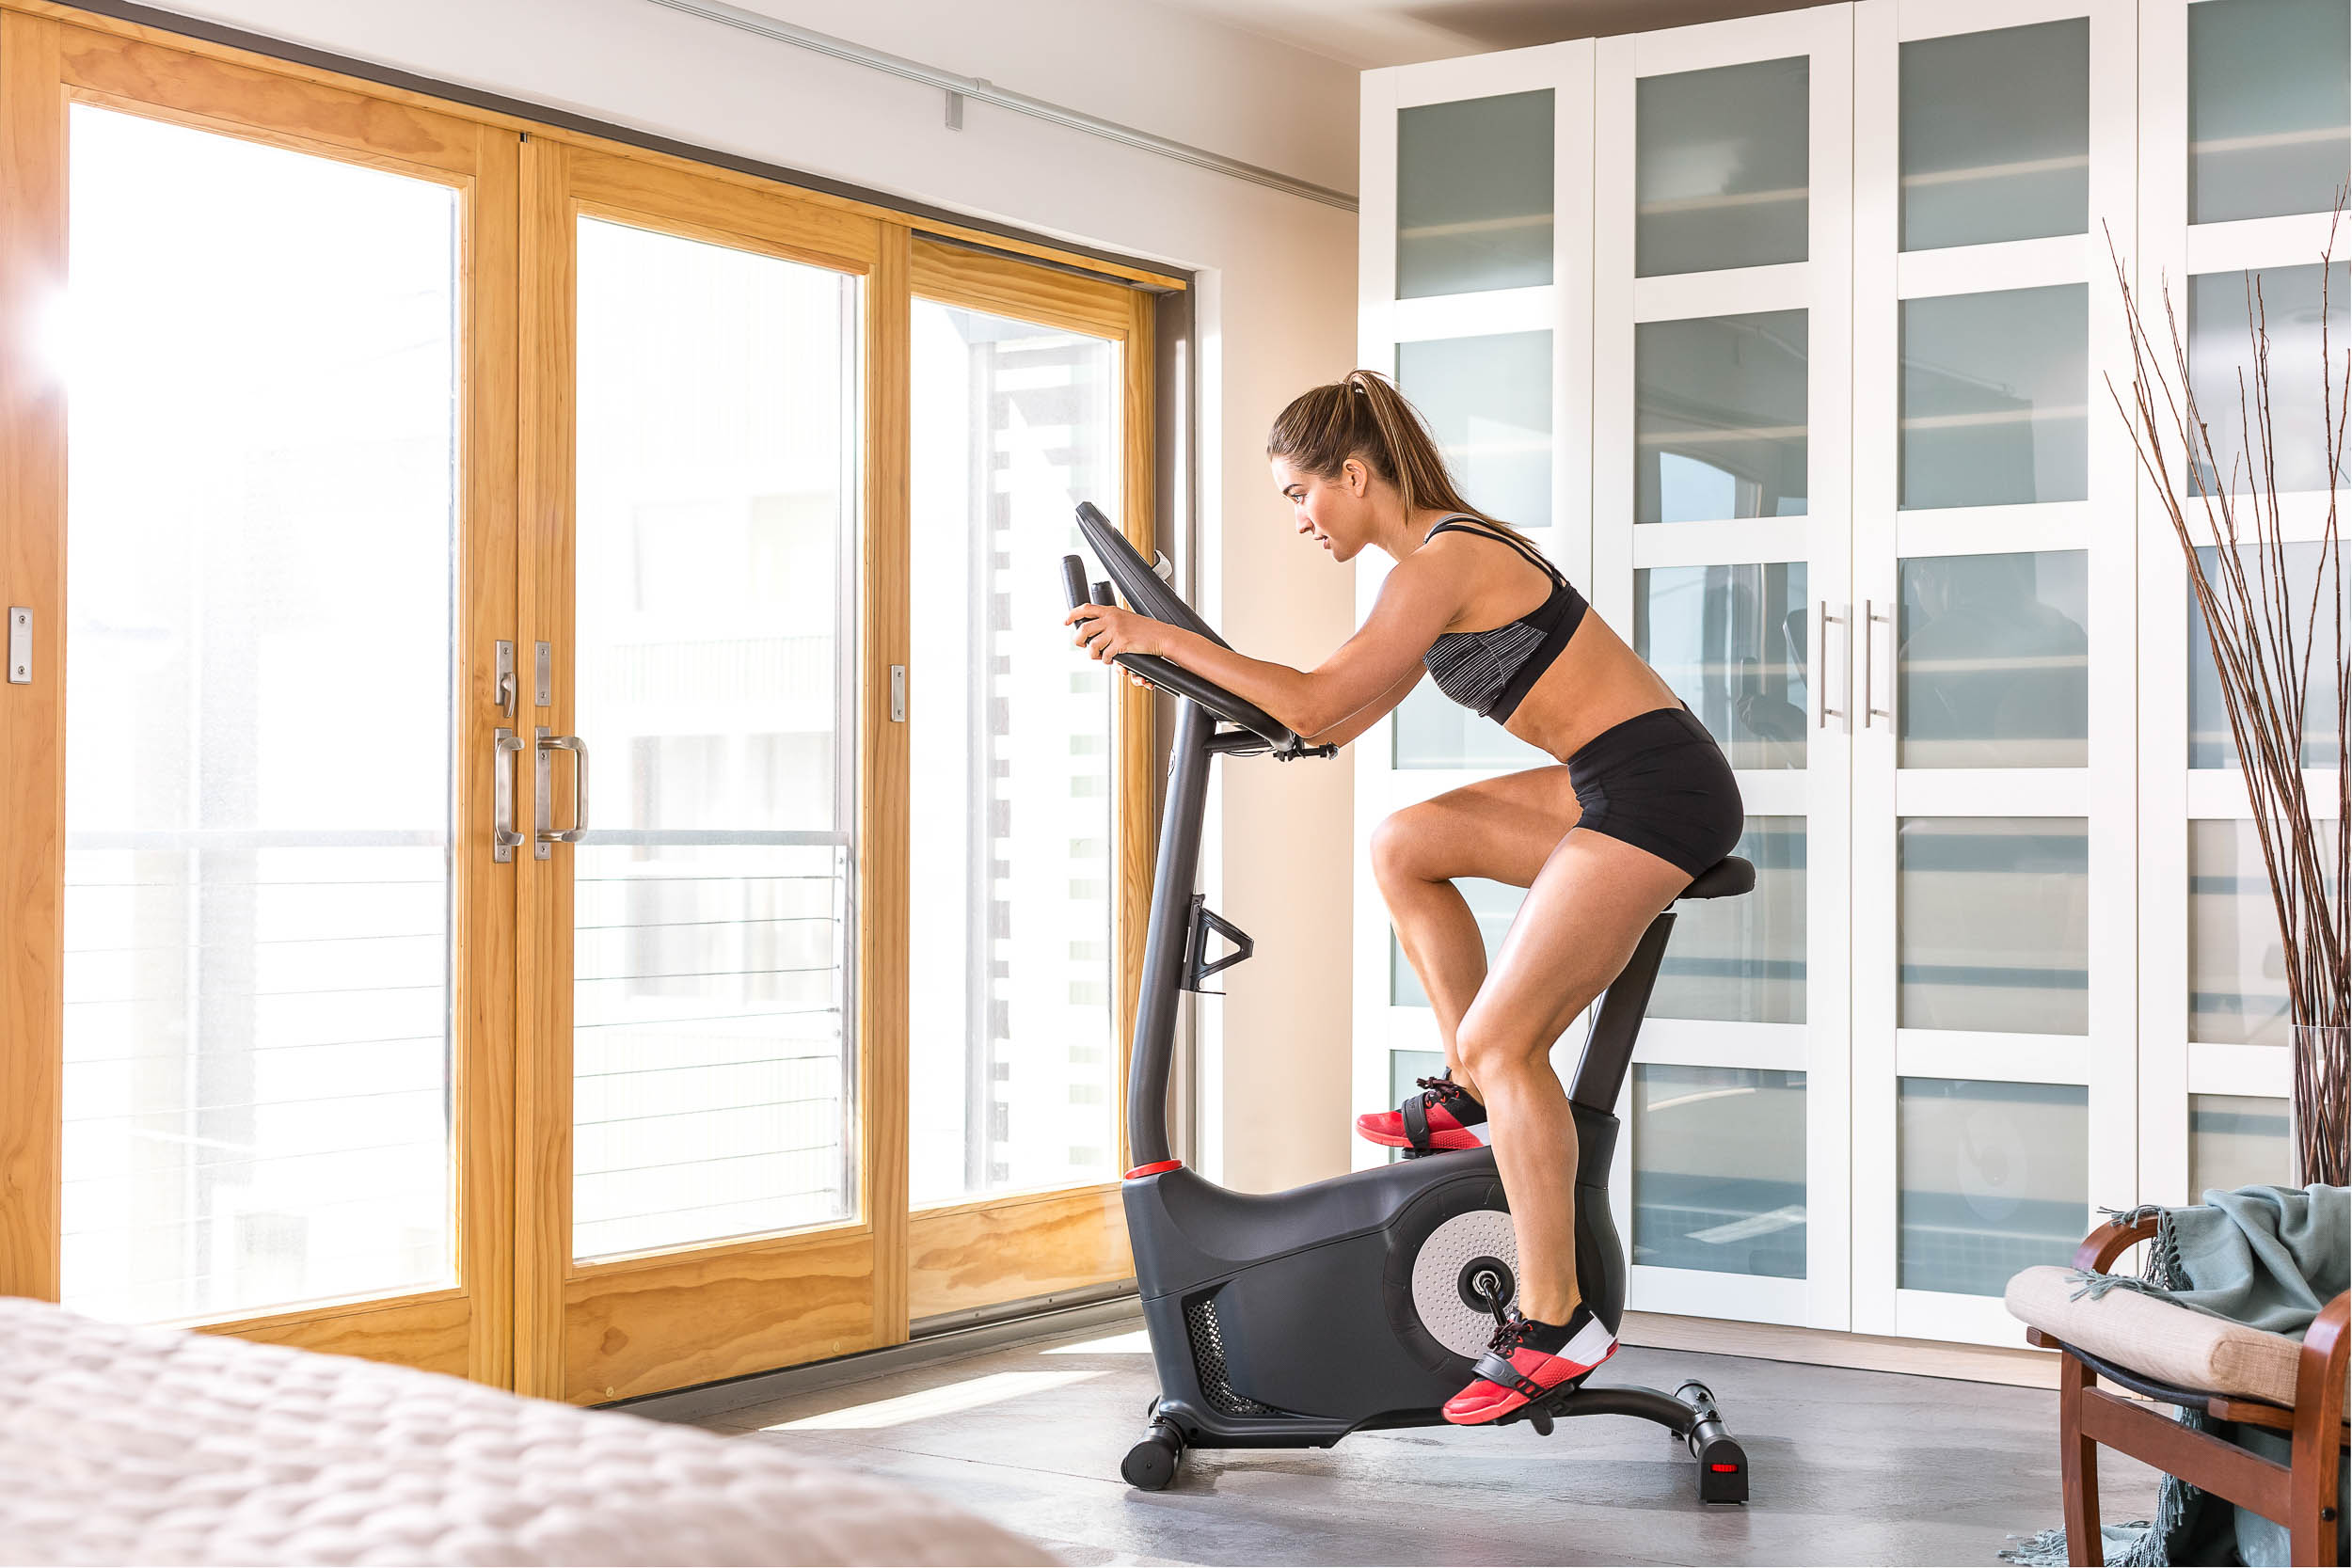 Image of Schwinn cardio equipment during a Cleveland photography project.